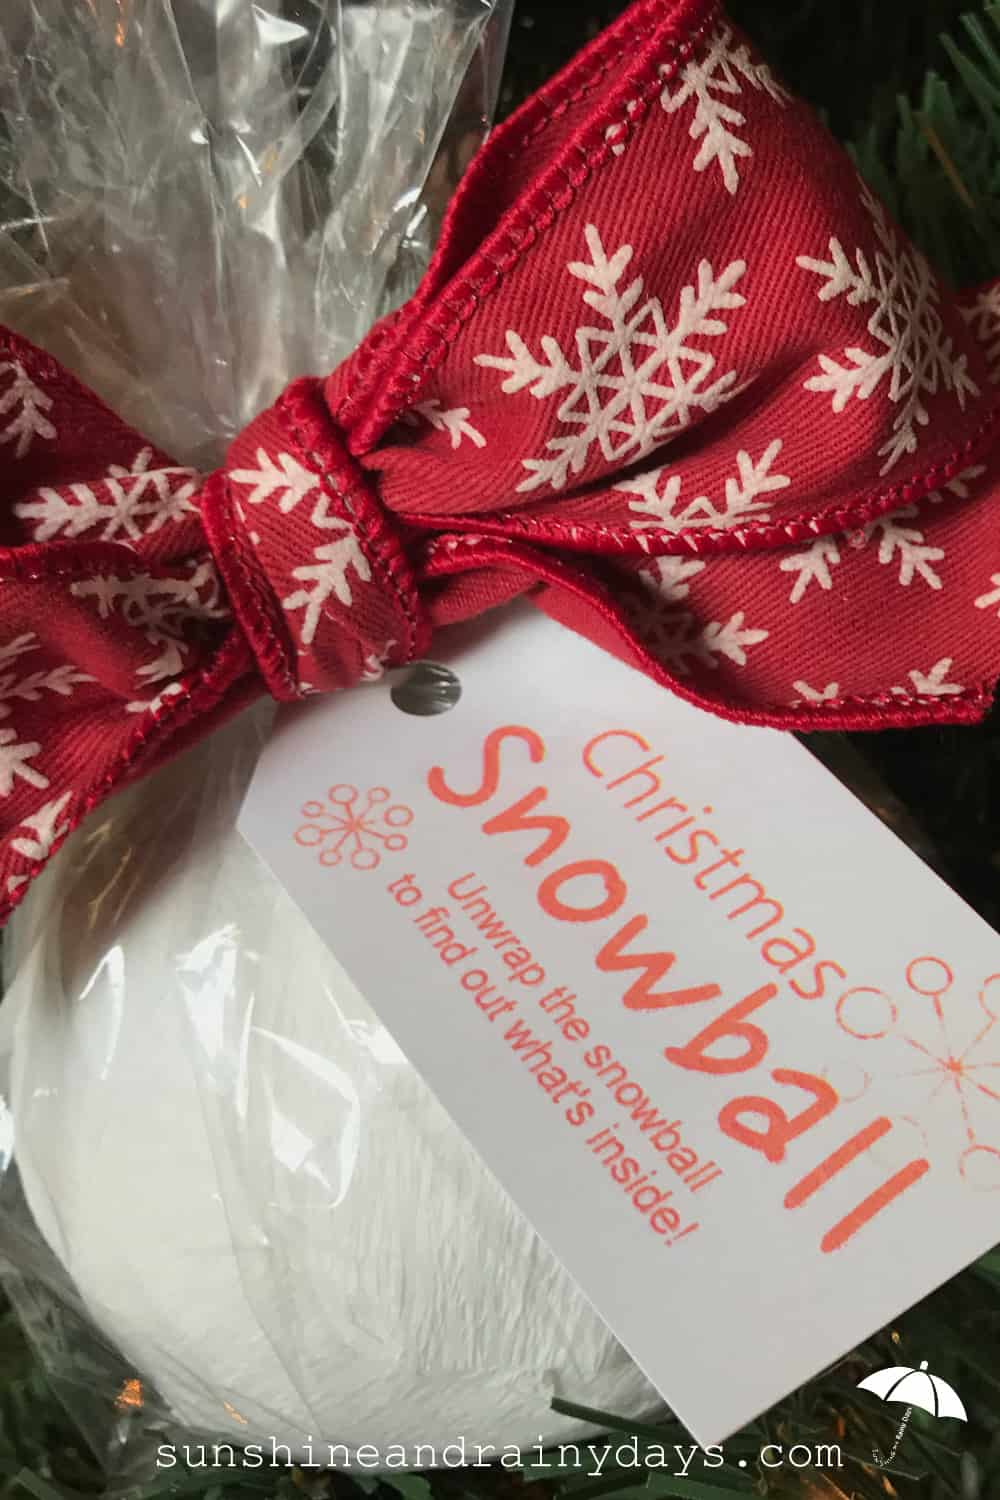 Money is an incredibly practical and useful gift, it's just so boring to give AND receive. The Christmas Snowball is a creative way to give money!